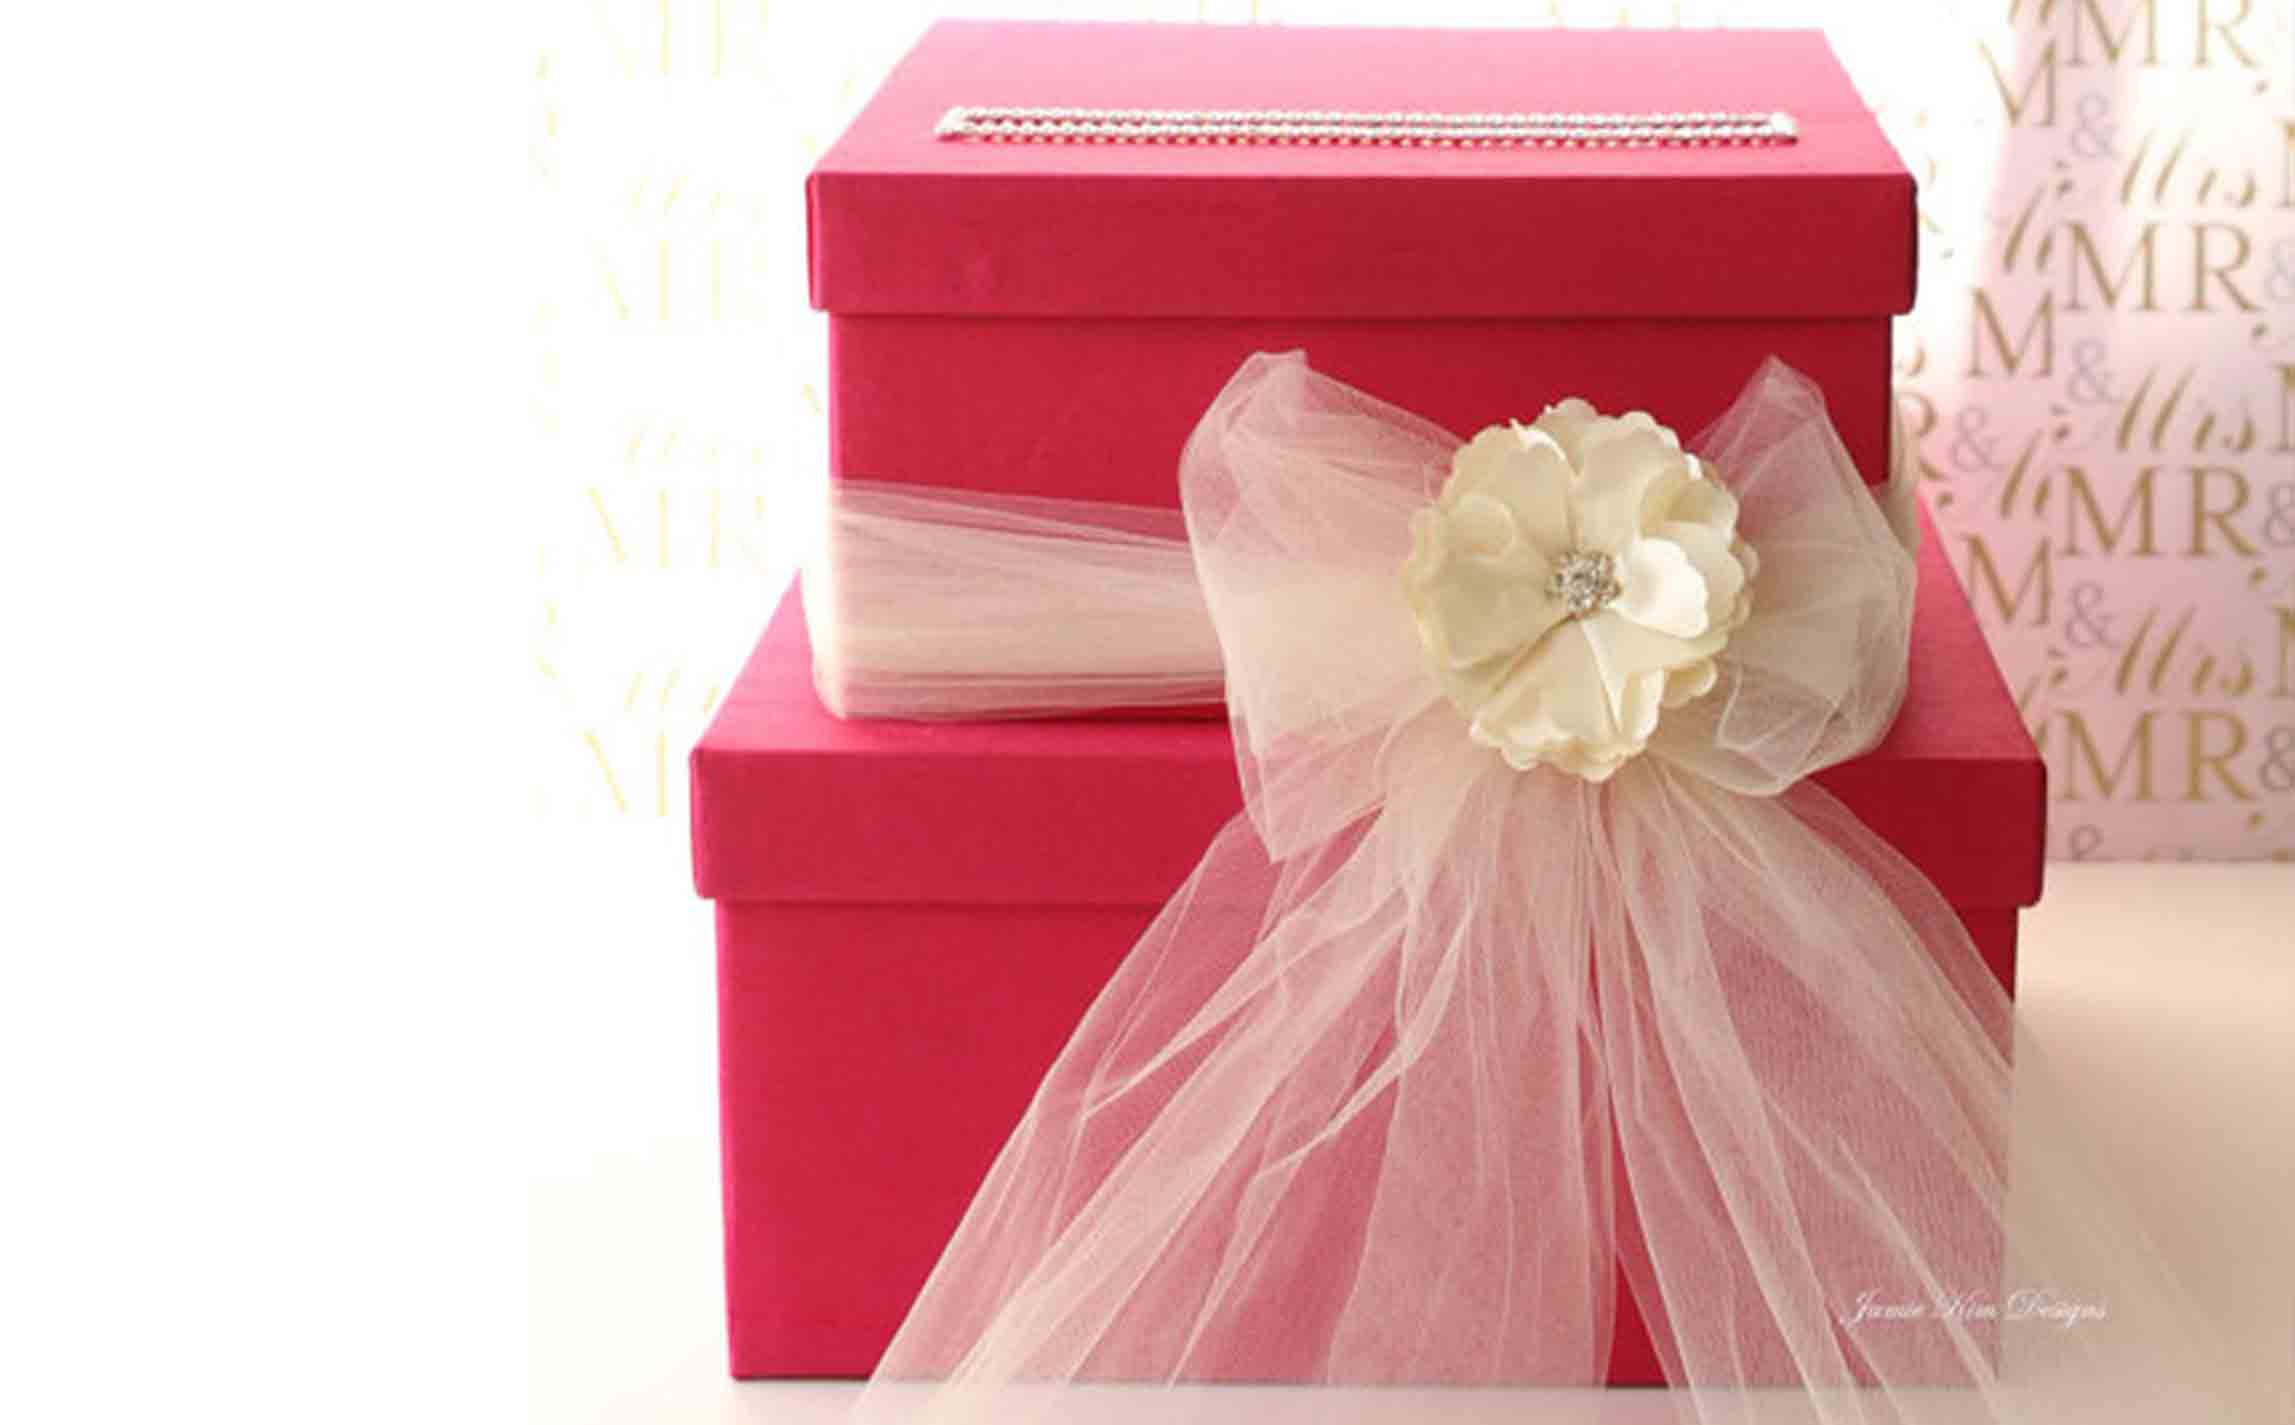 Wedding gift card box by Jamie Kim Designs